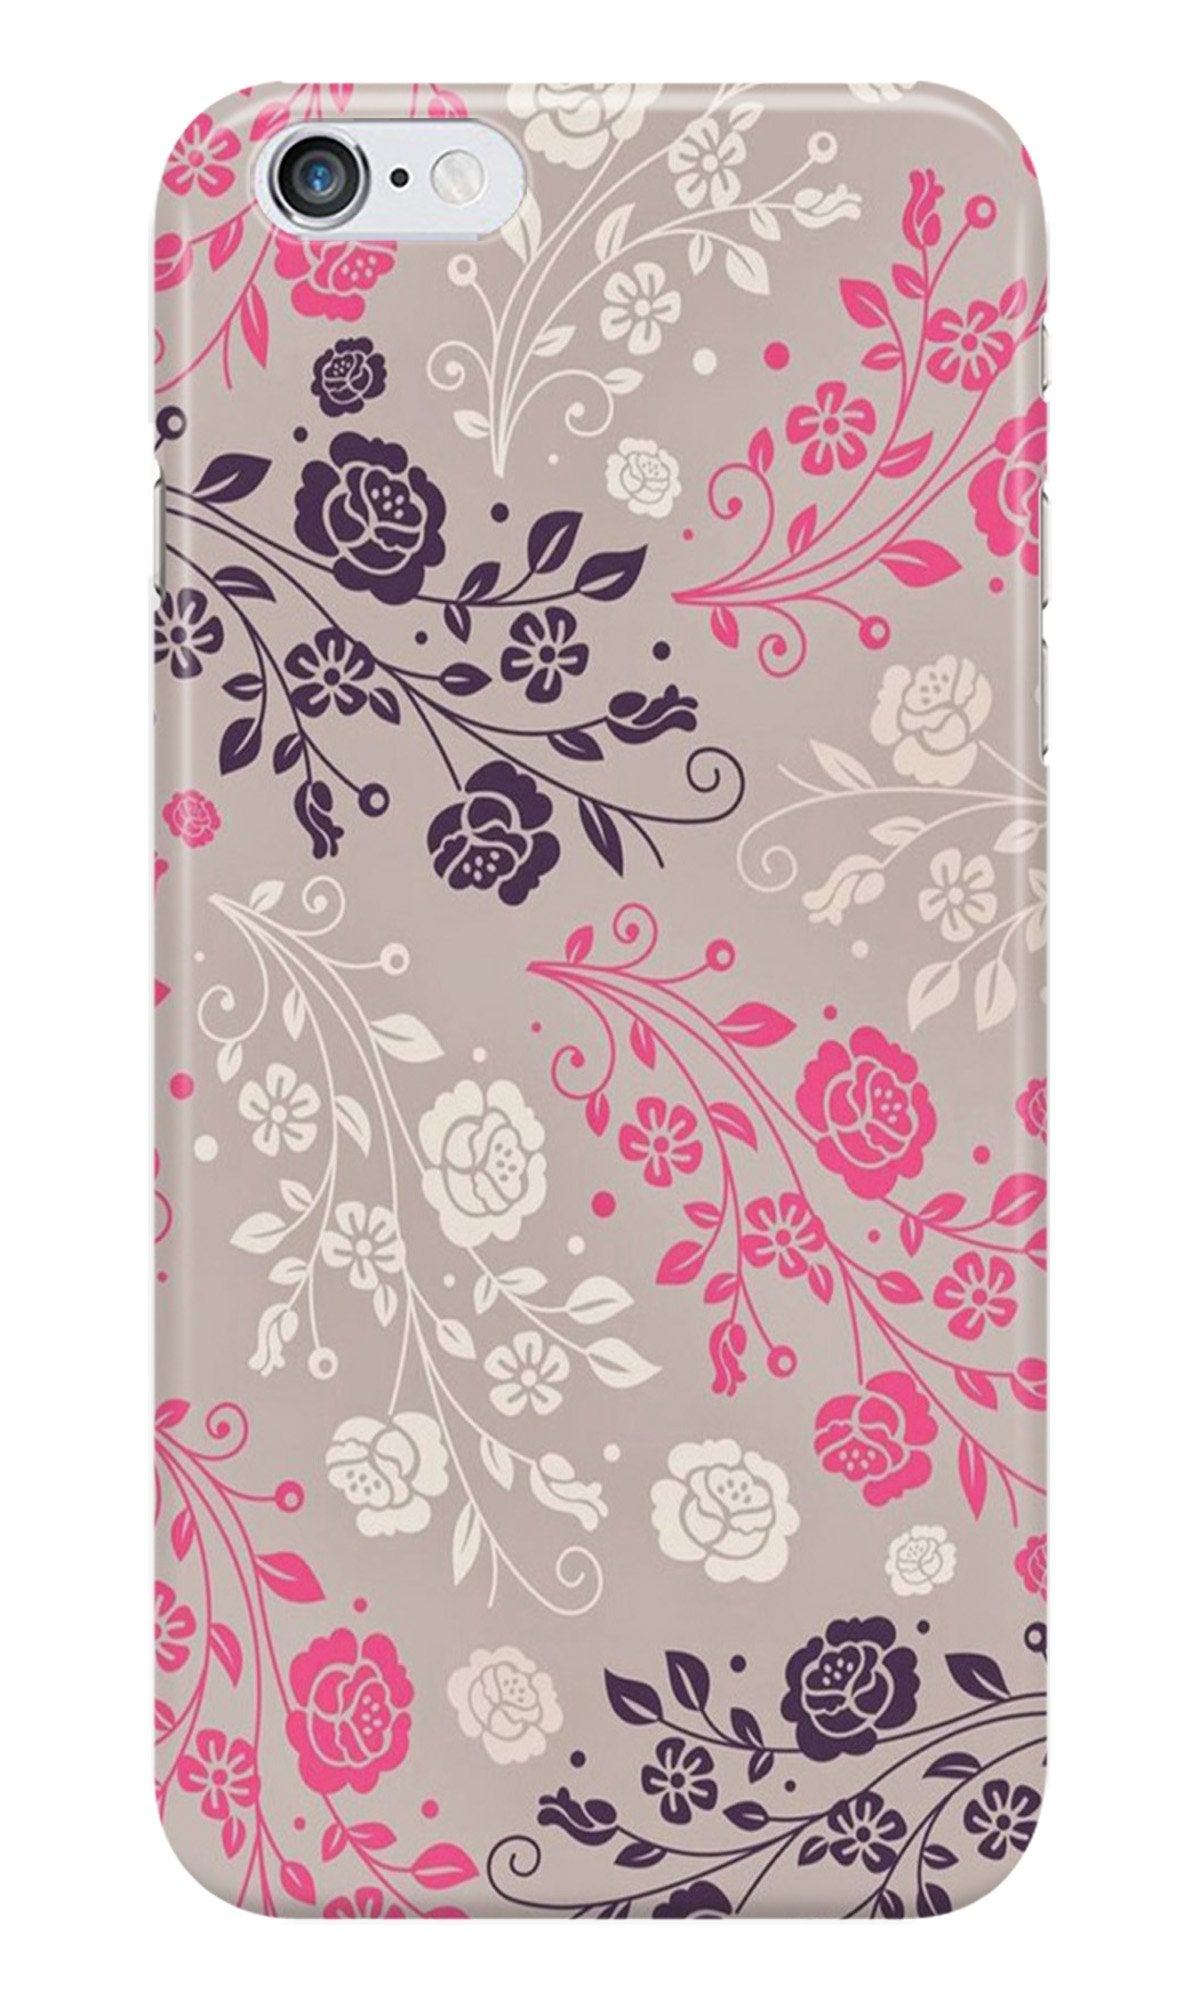 Pattern2 Case for iPhone 6/ 6s